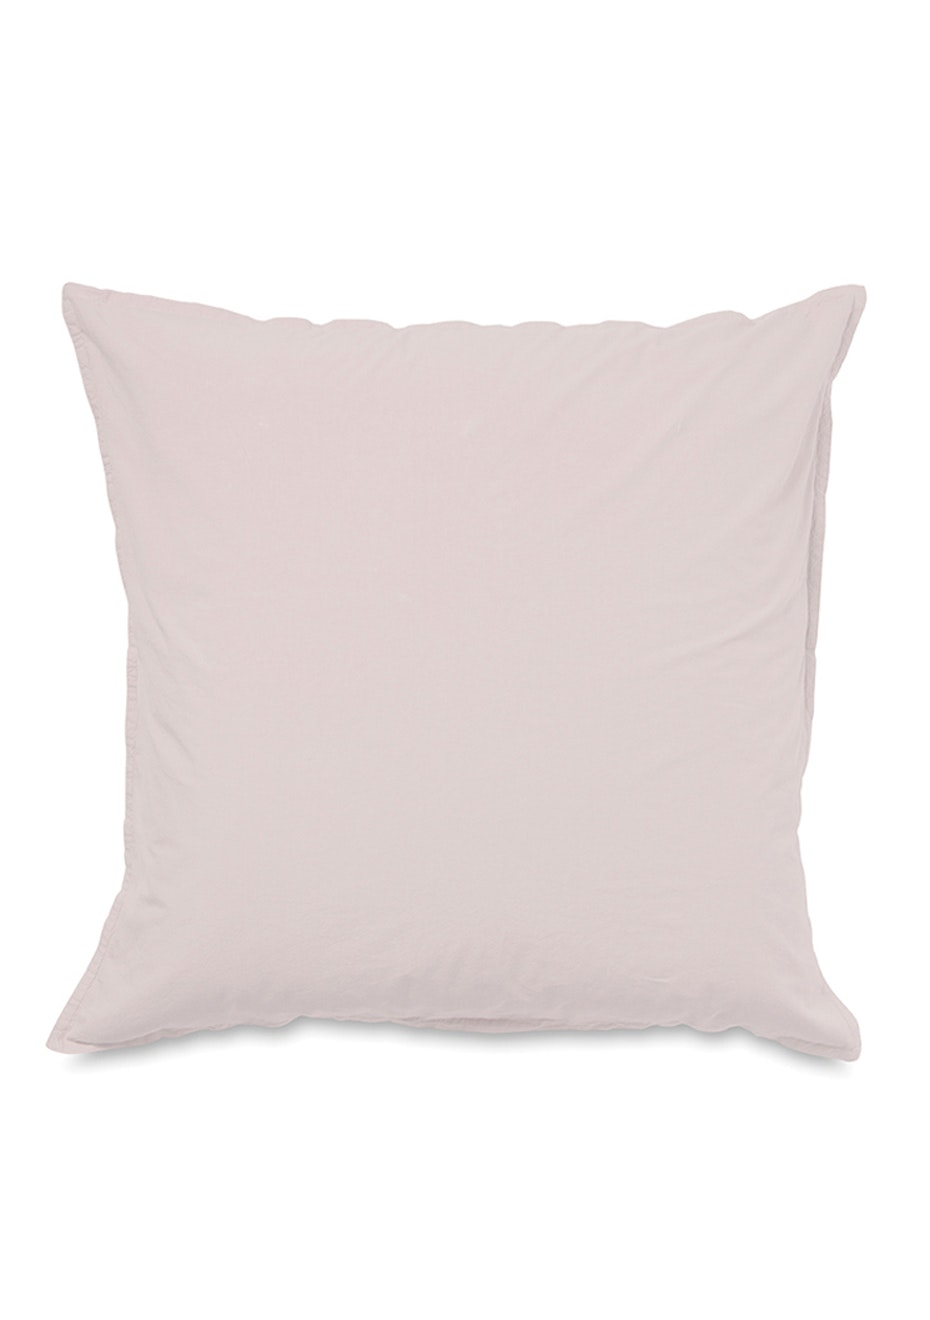 Citta - Washed Egyptian Cotton Euro Pillowcase - Ice Pink